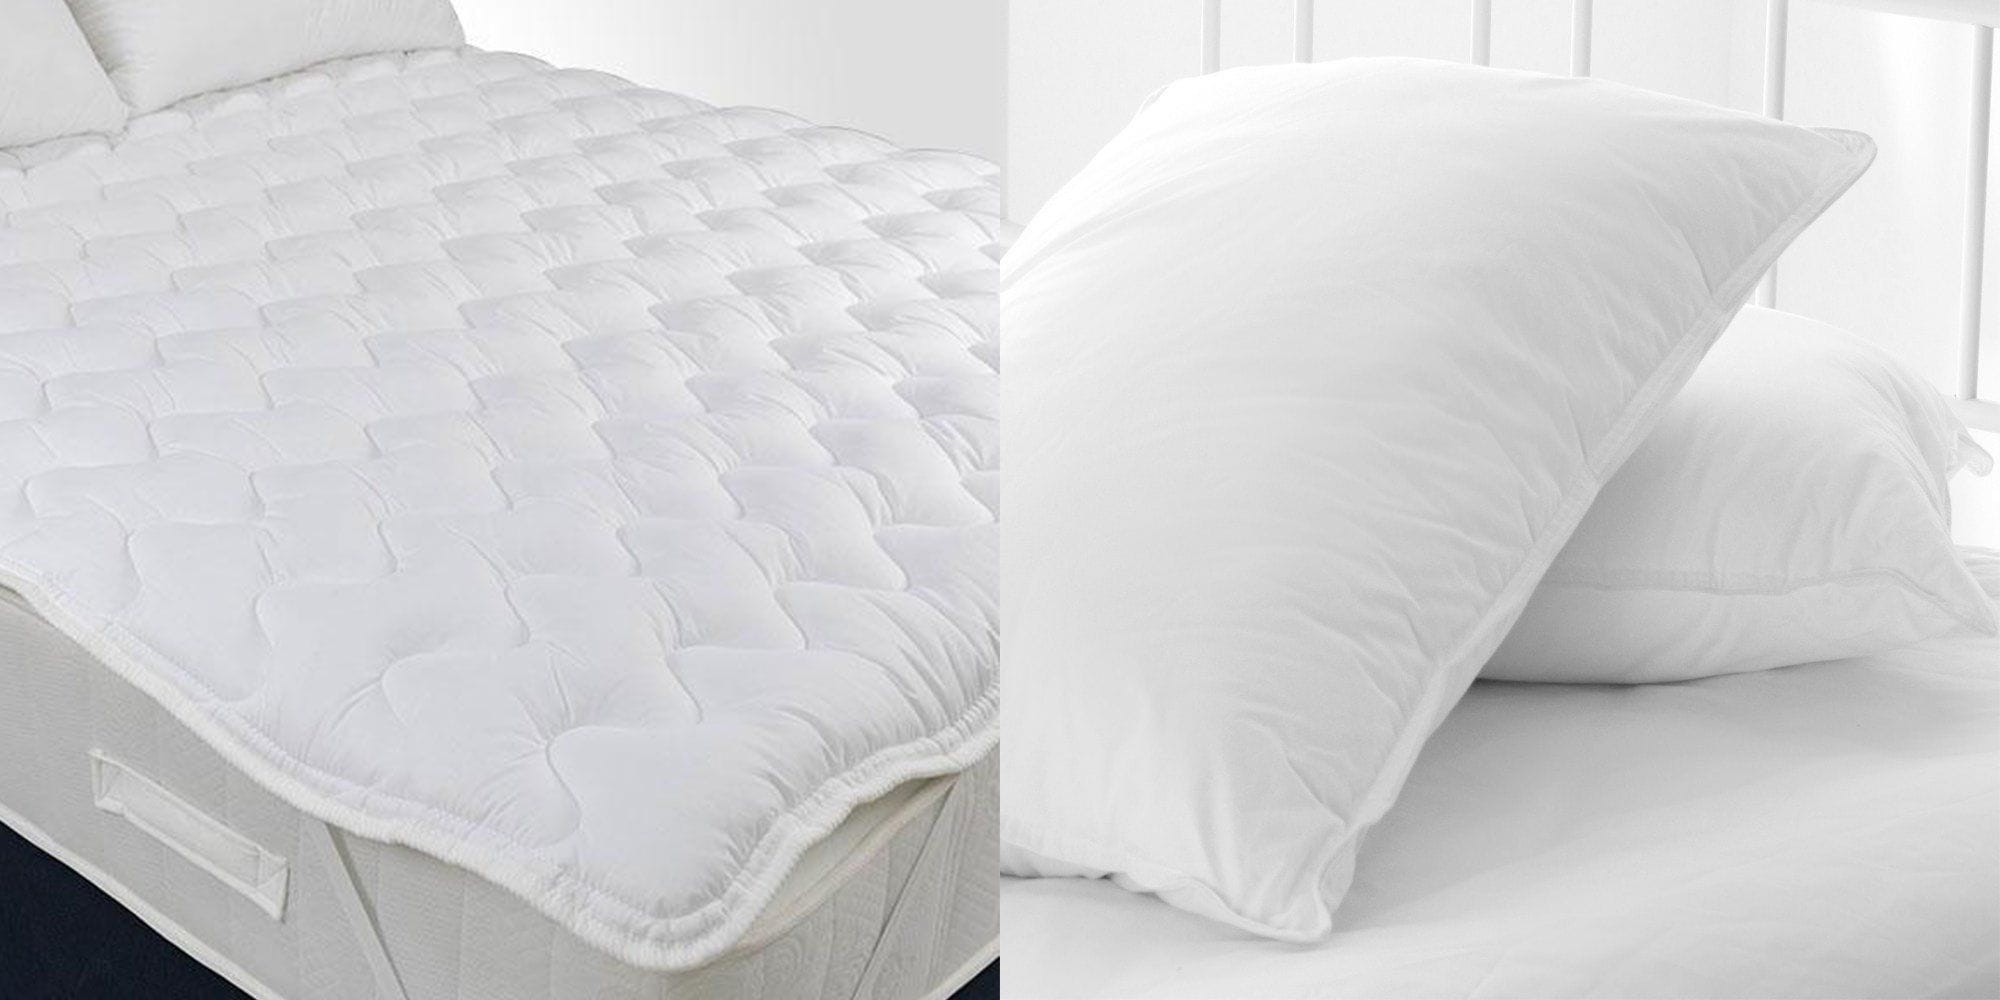 Topper + Micro Fibre Pillow Value Set